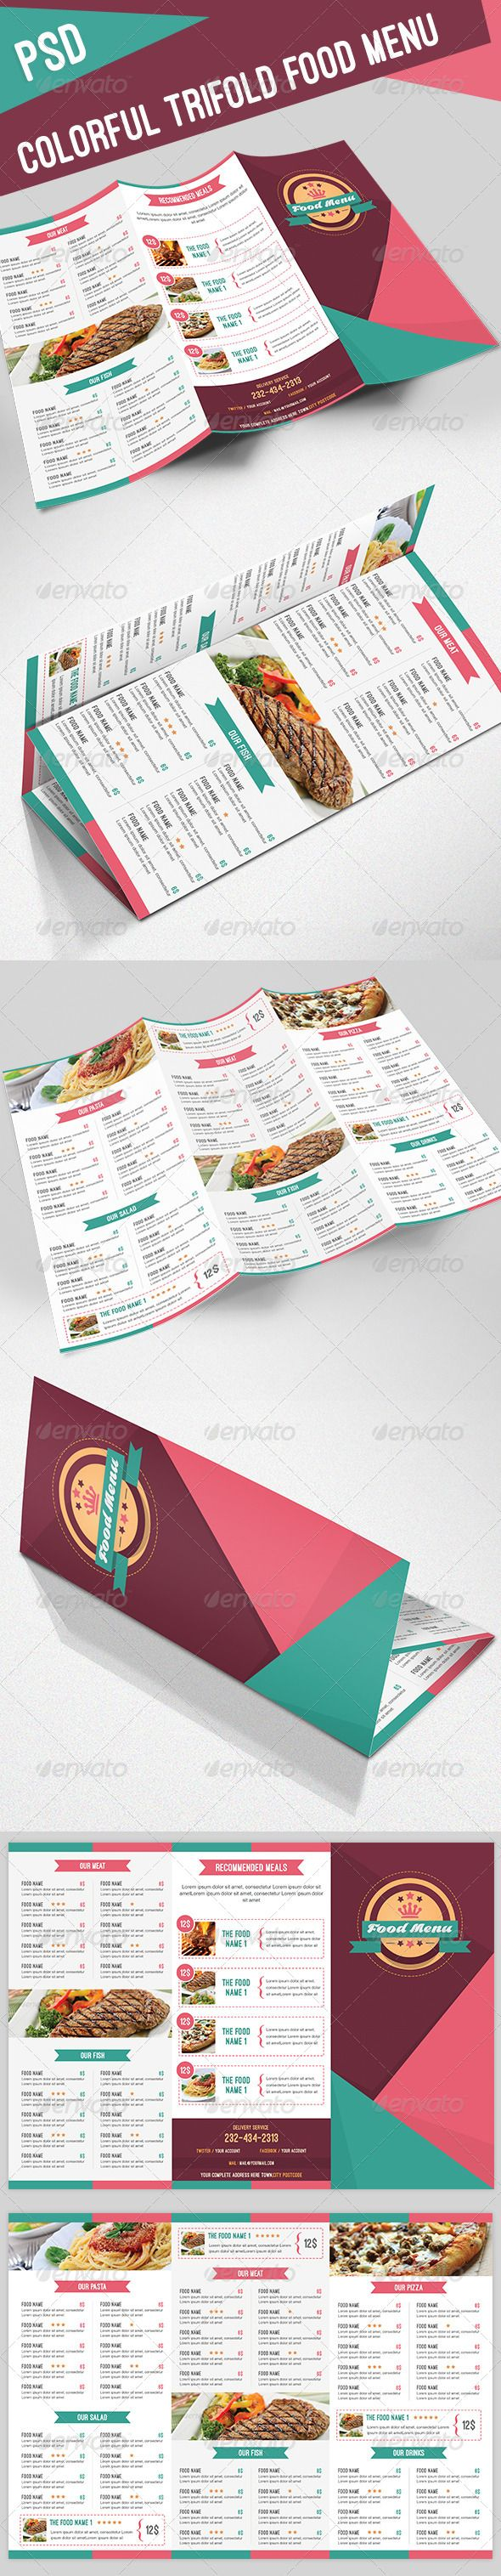 Colorful Trifold Food Menu Template #design #speisekarte Download: http://graphicriver.net/item/colorful-trifold-food-menu/8144768?ref=ksioks